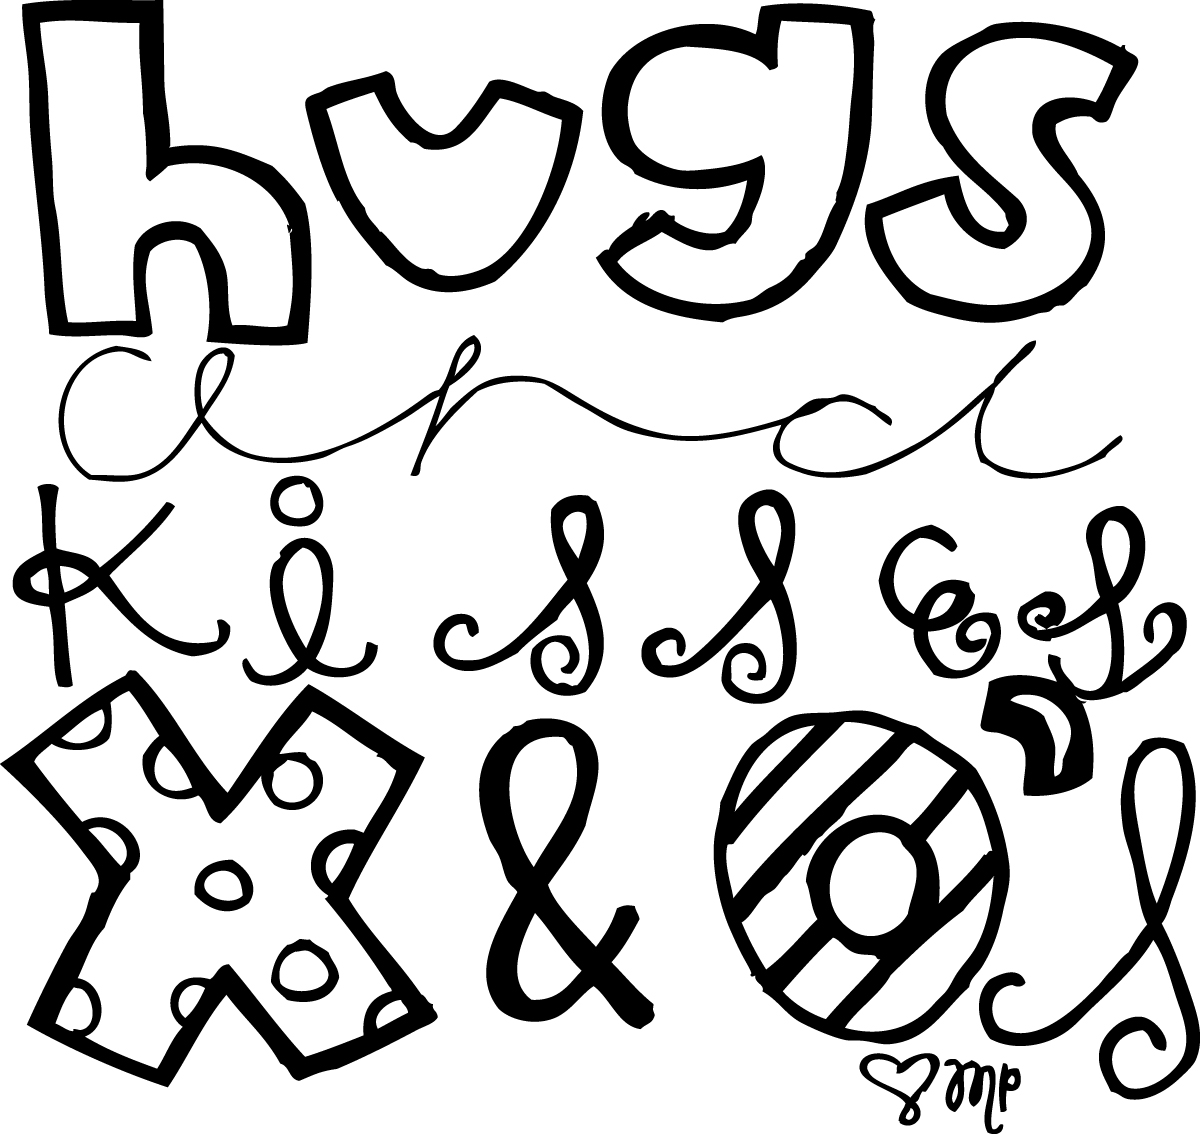 All Things Girly Illustrating: hugs and kisses